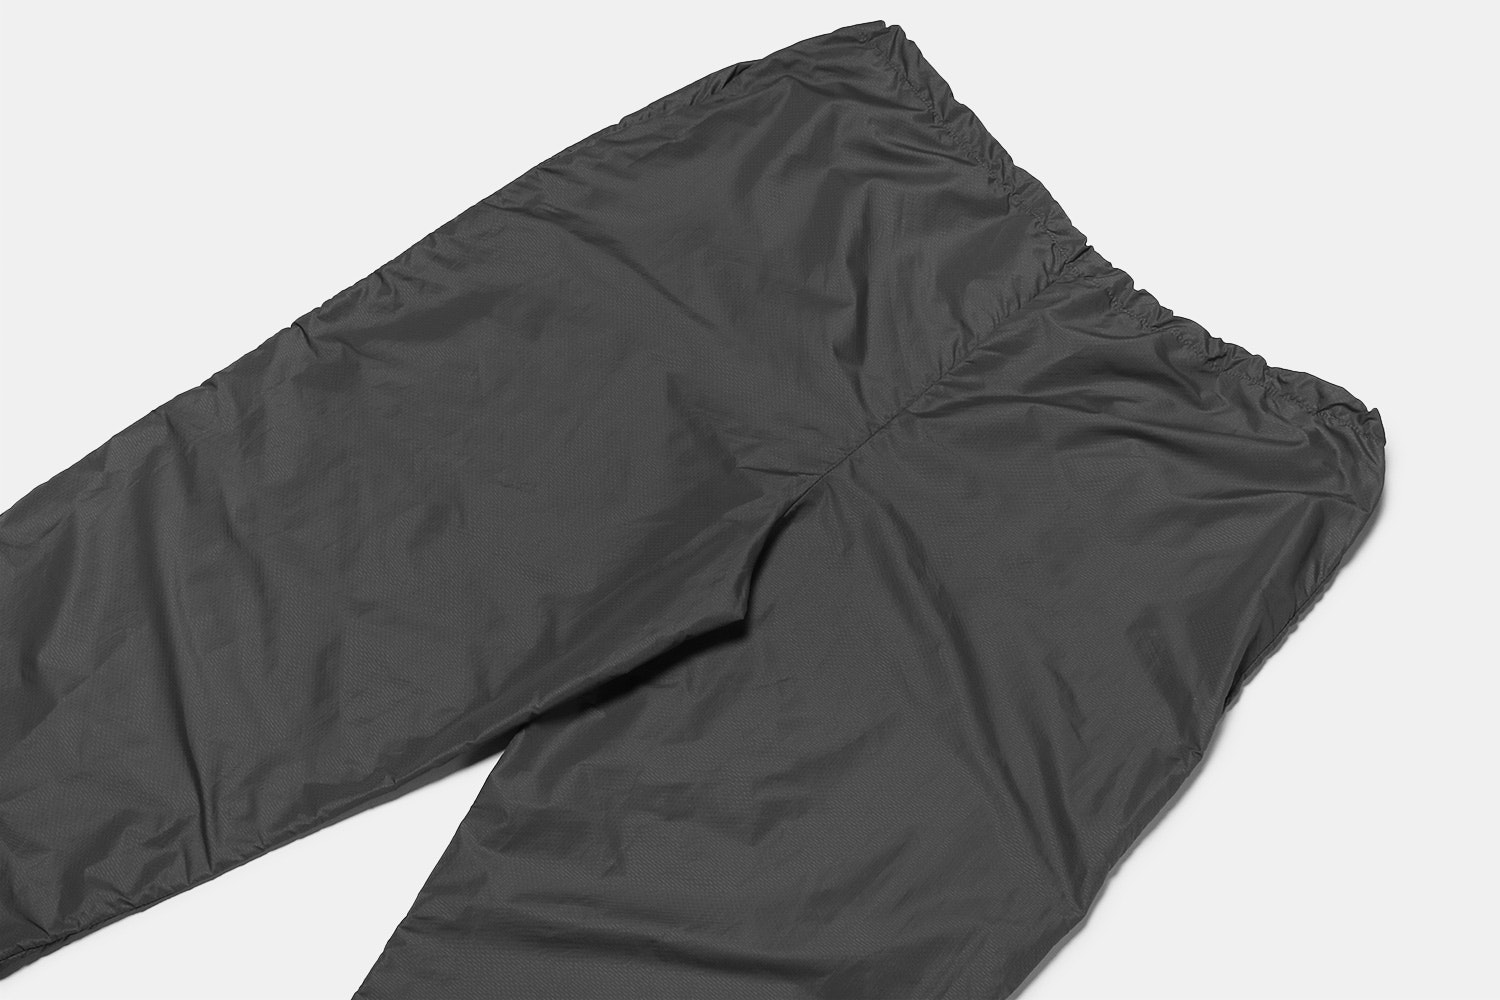 Luke's Ultralite Hexon Adjustable Wind Pants